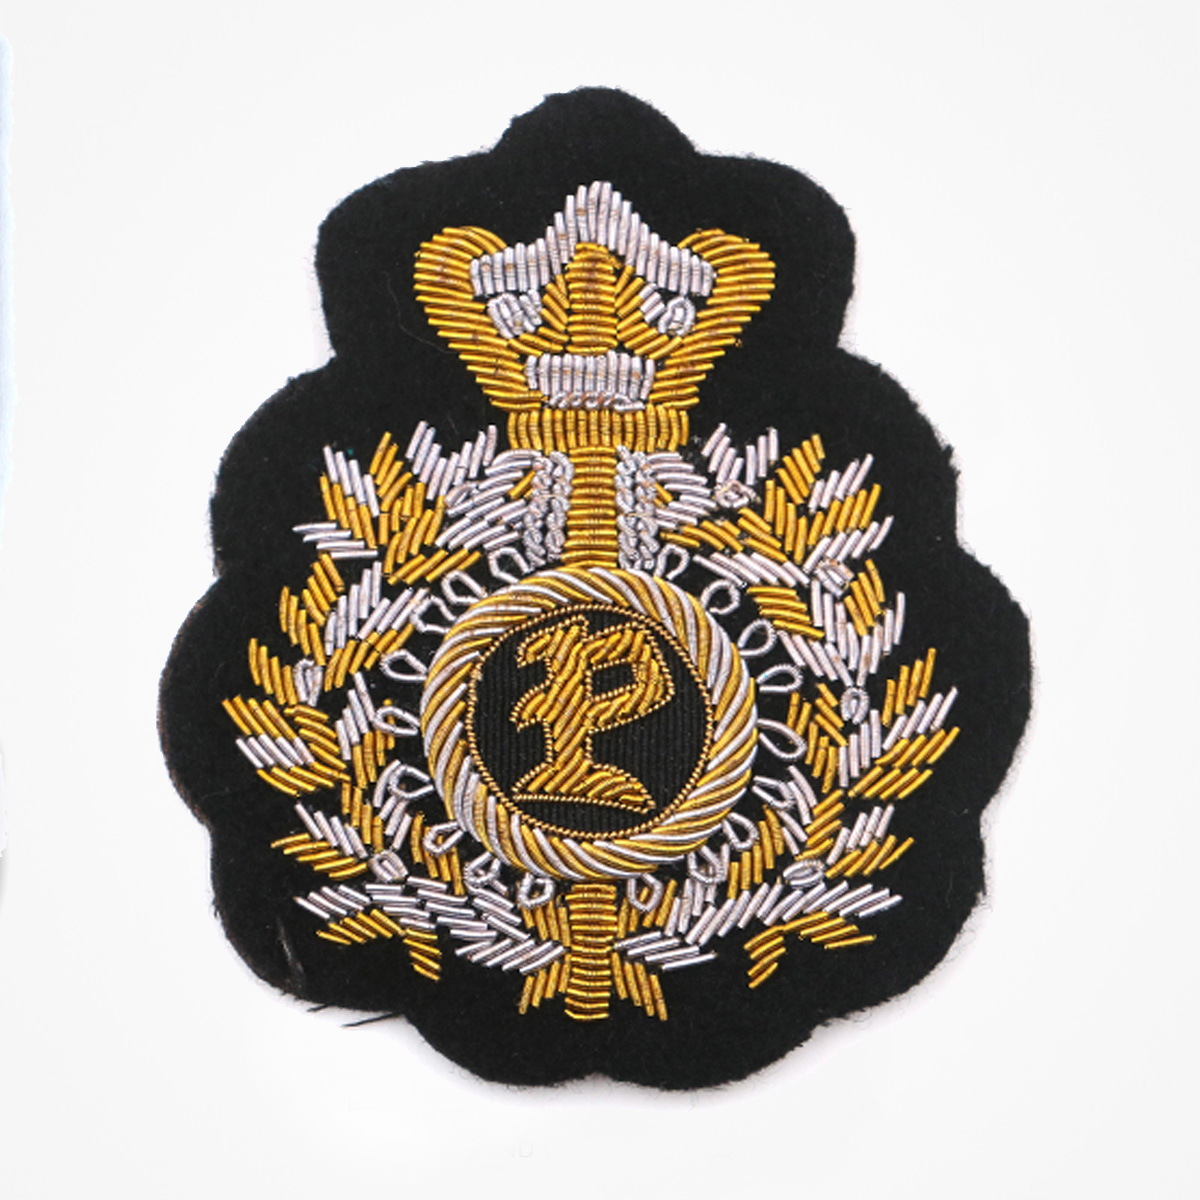 Qg - 3484 - Fashionable 3D embroidered look Made by skilled artisans Bullion wire and silk thread hand Stitched on Black color Felt Available in gold and silver colors Size = 95 mm height 78 mm width sew-on backing: Perfect for caps, sports jacket, leather jackets, blazer coat, Blazer Pocket, shirts uniforms, Accessories and many More Pin backing: easy to removable 5